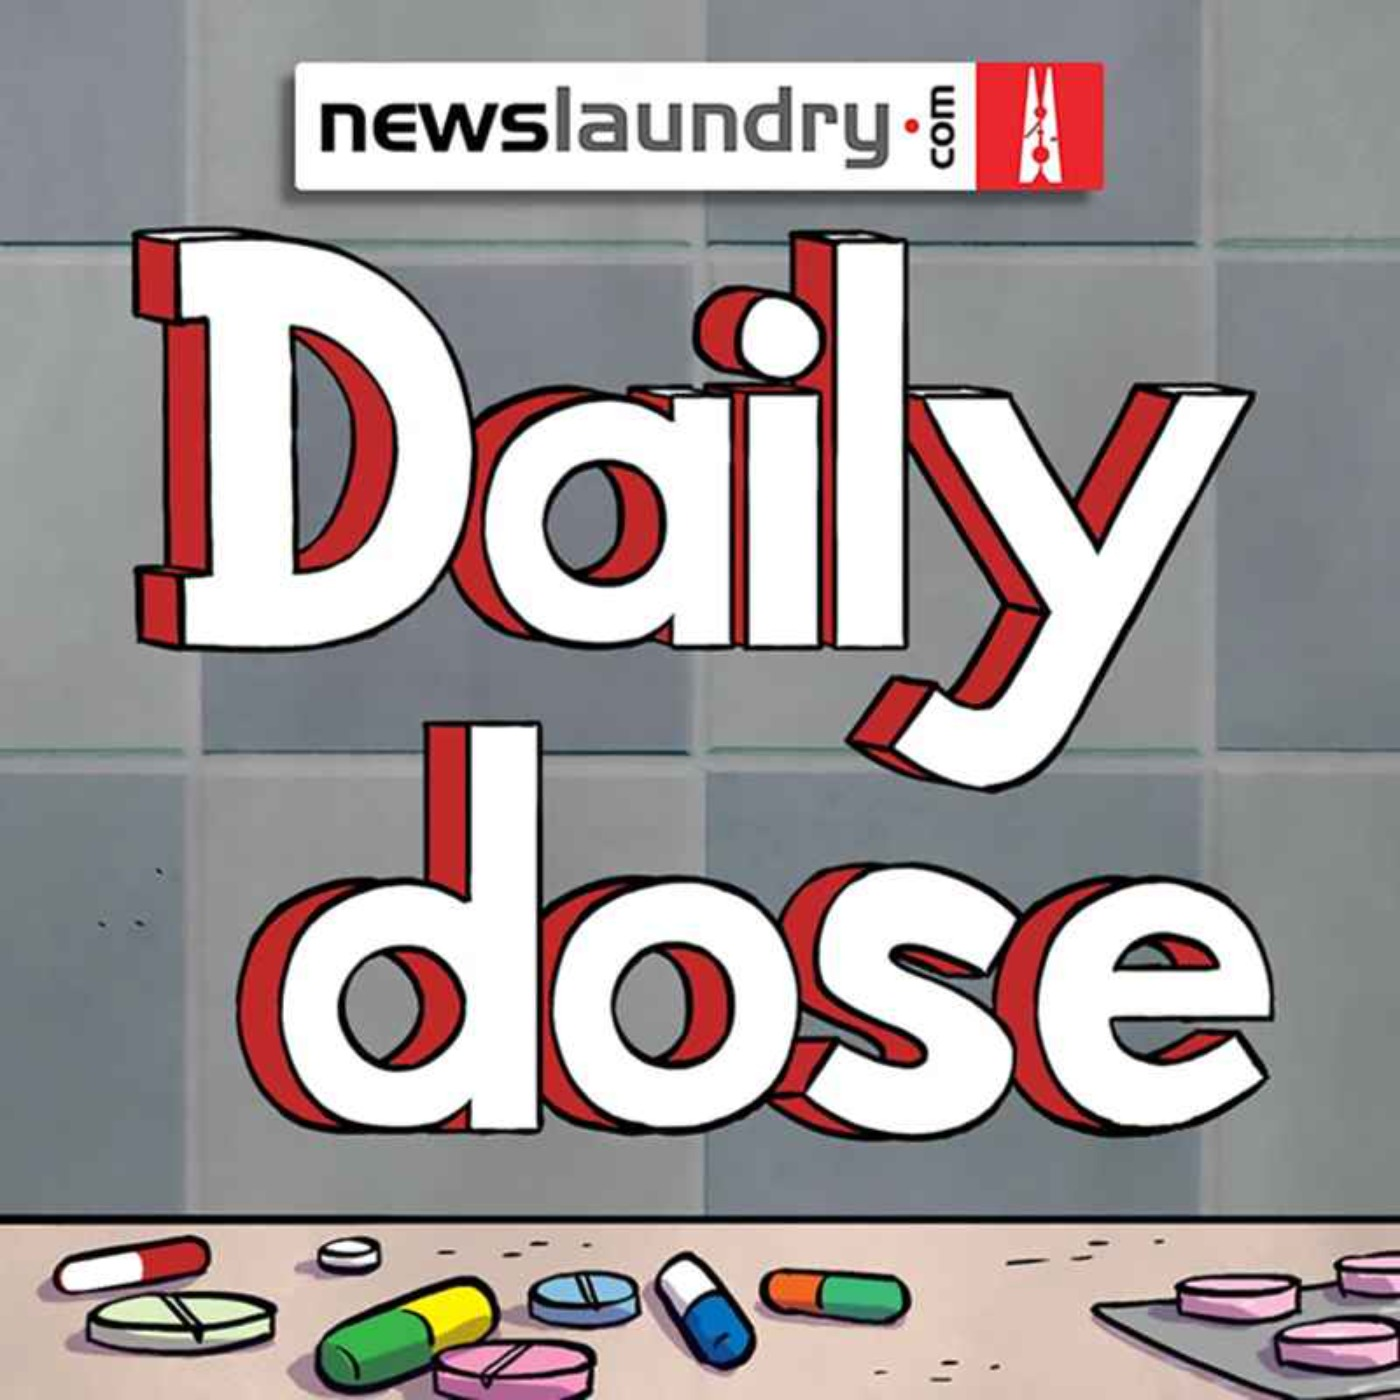 Daily Dose Ep 544: Supreme Court in Arnab Goswami case, Bihar election results, and Covid-19